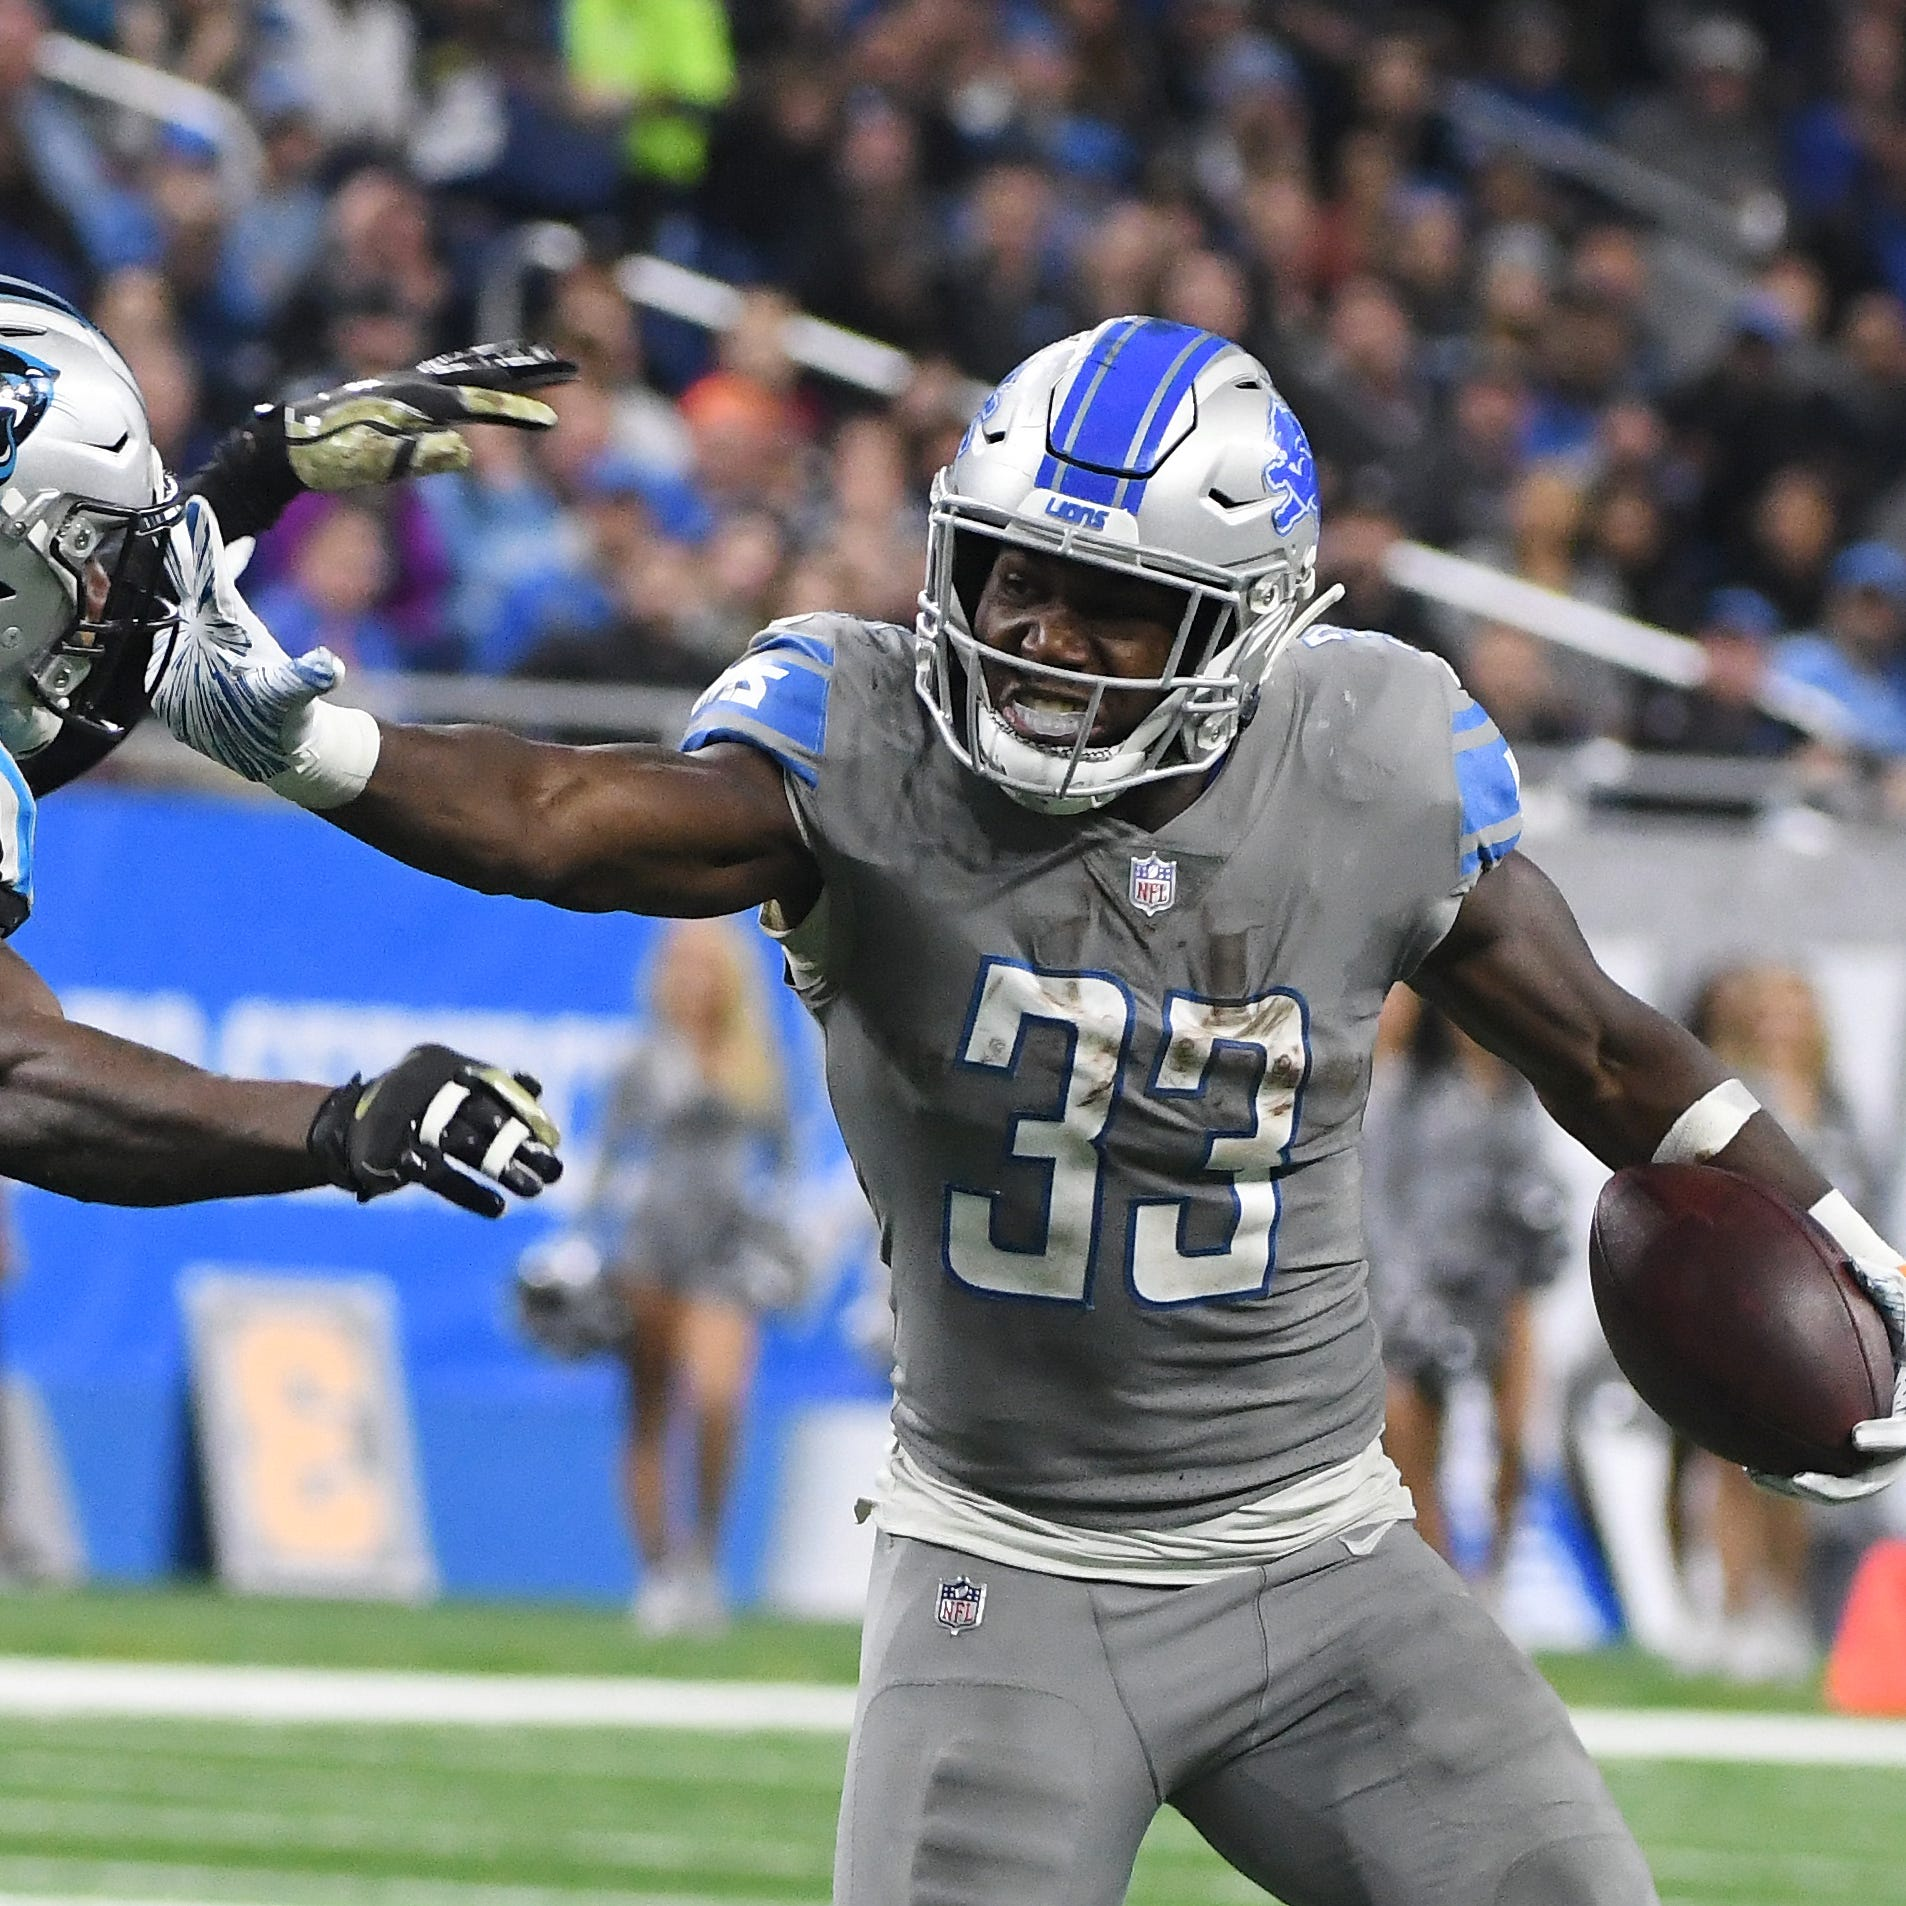 Wojo: Lions' victory is costly if Kerryon Johnson is out